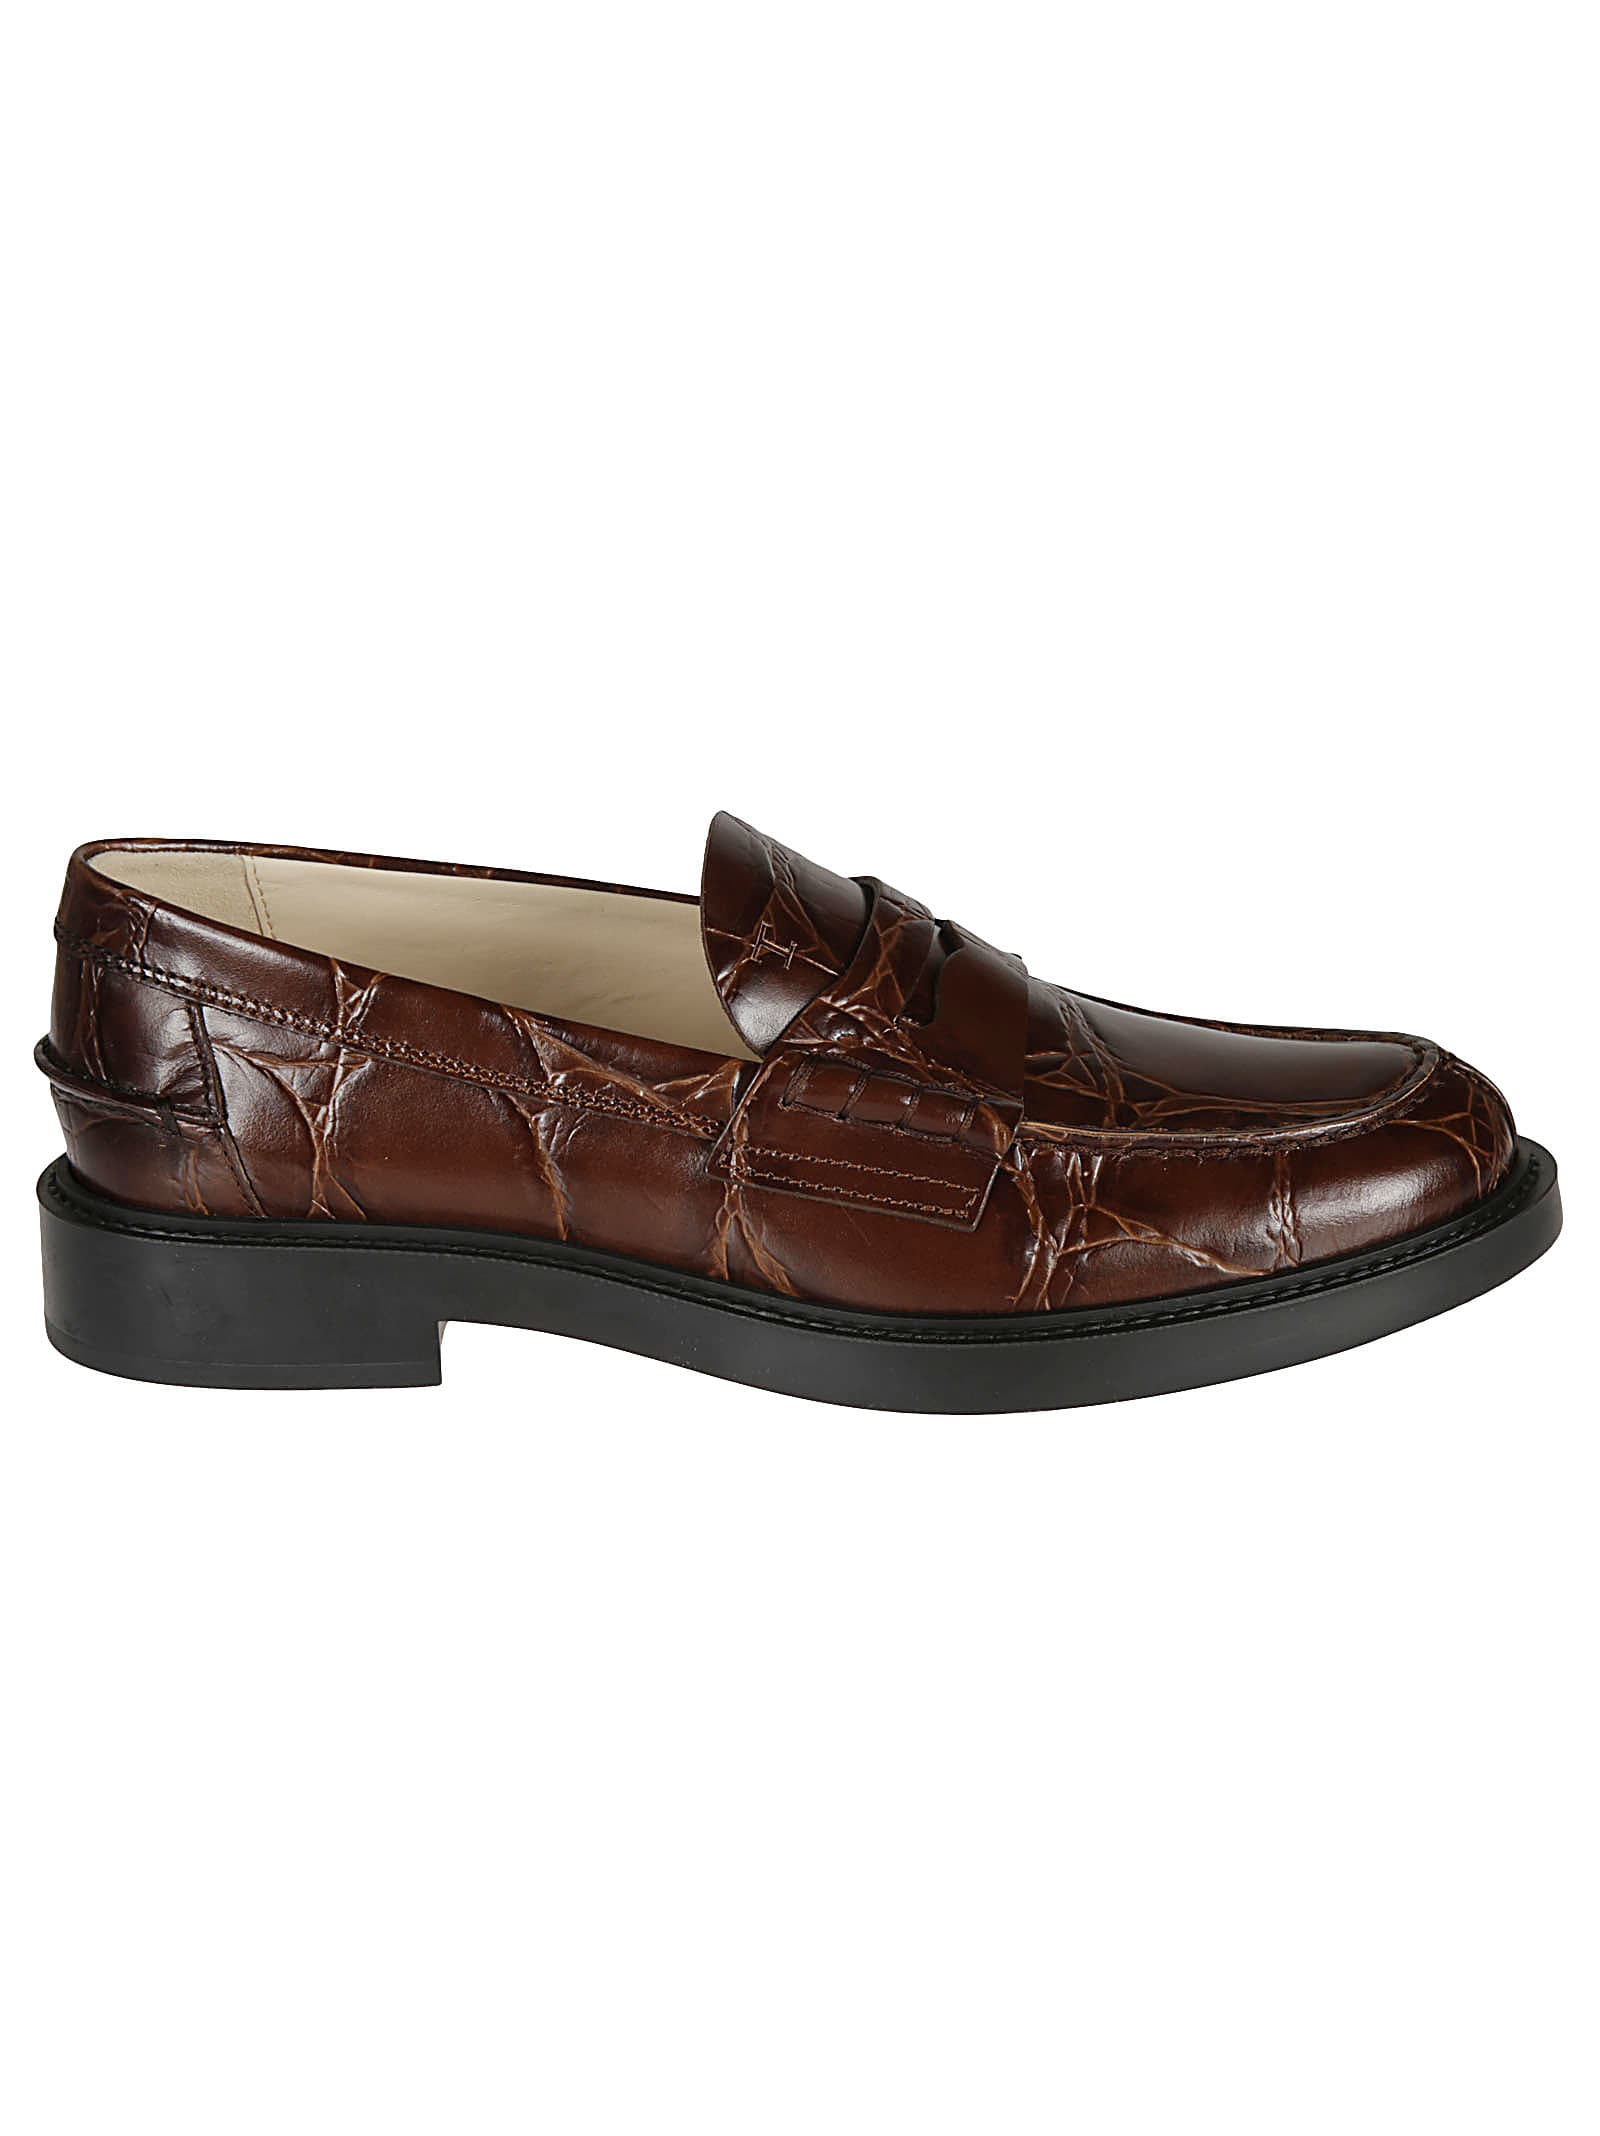 Tods Vintage Effect Loafers